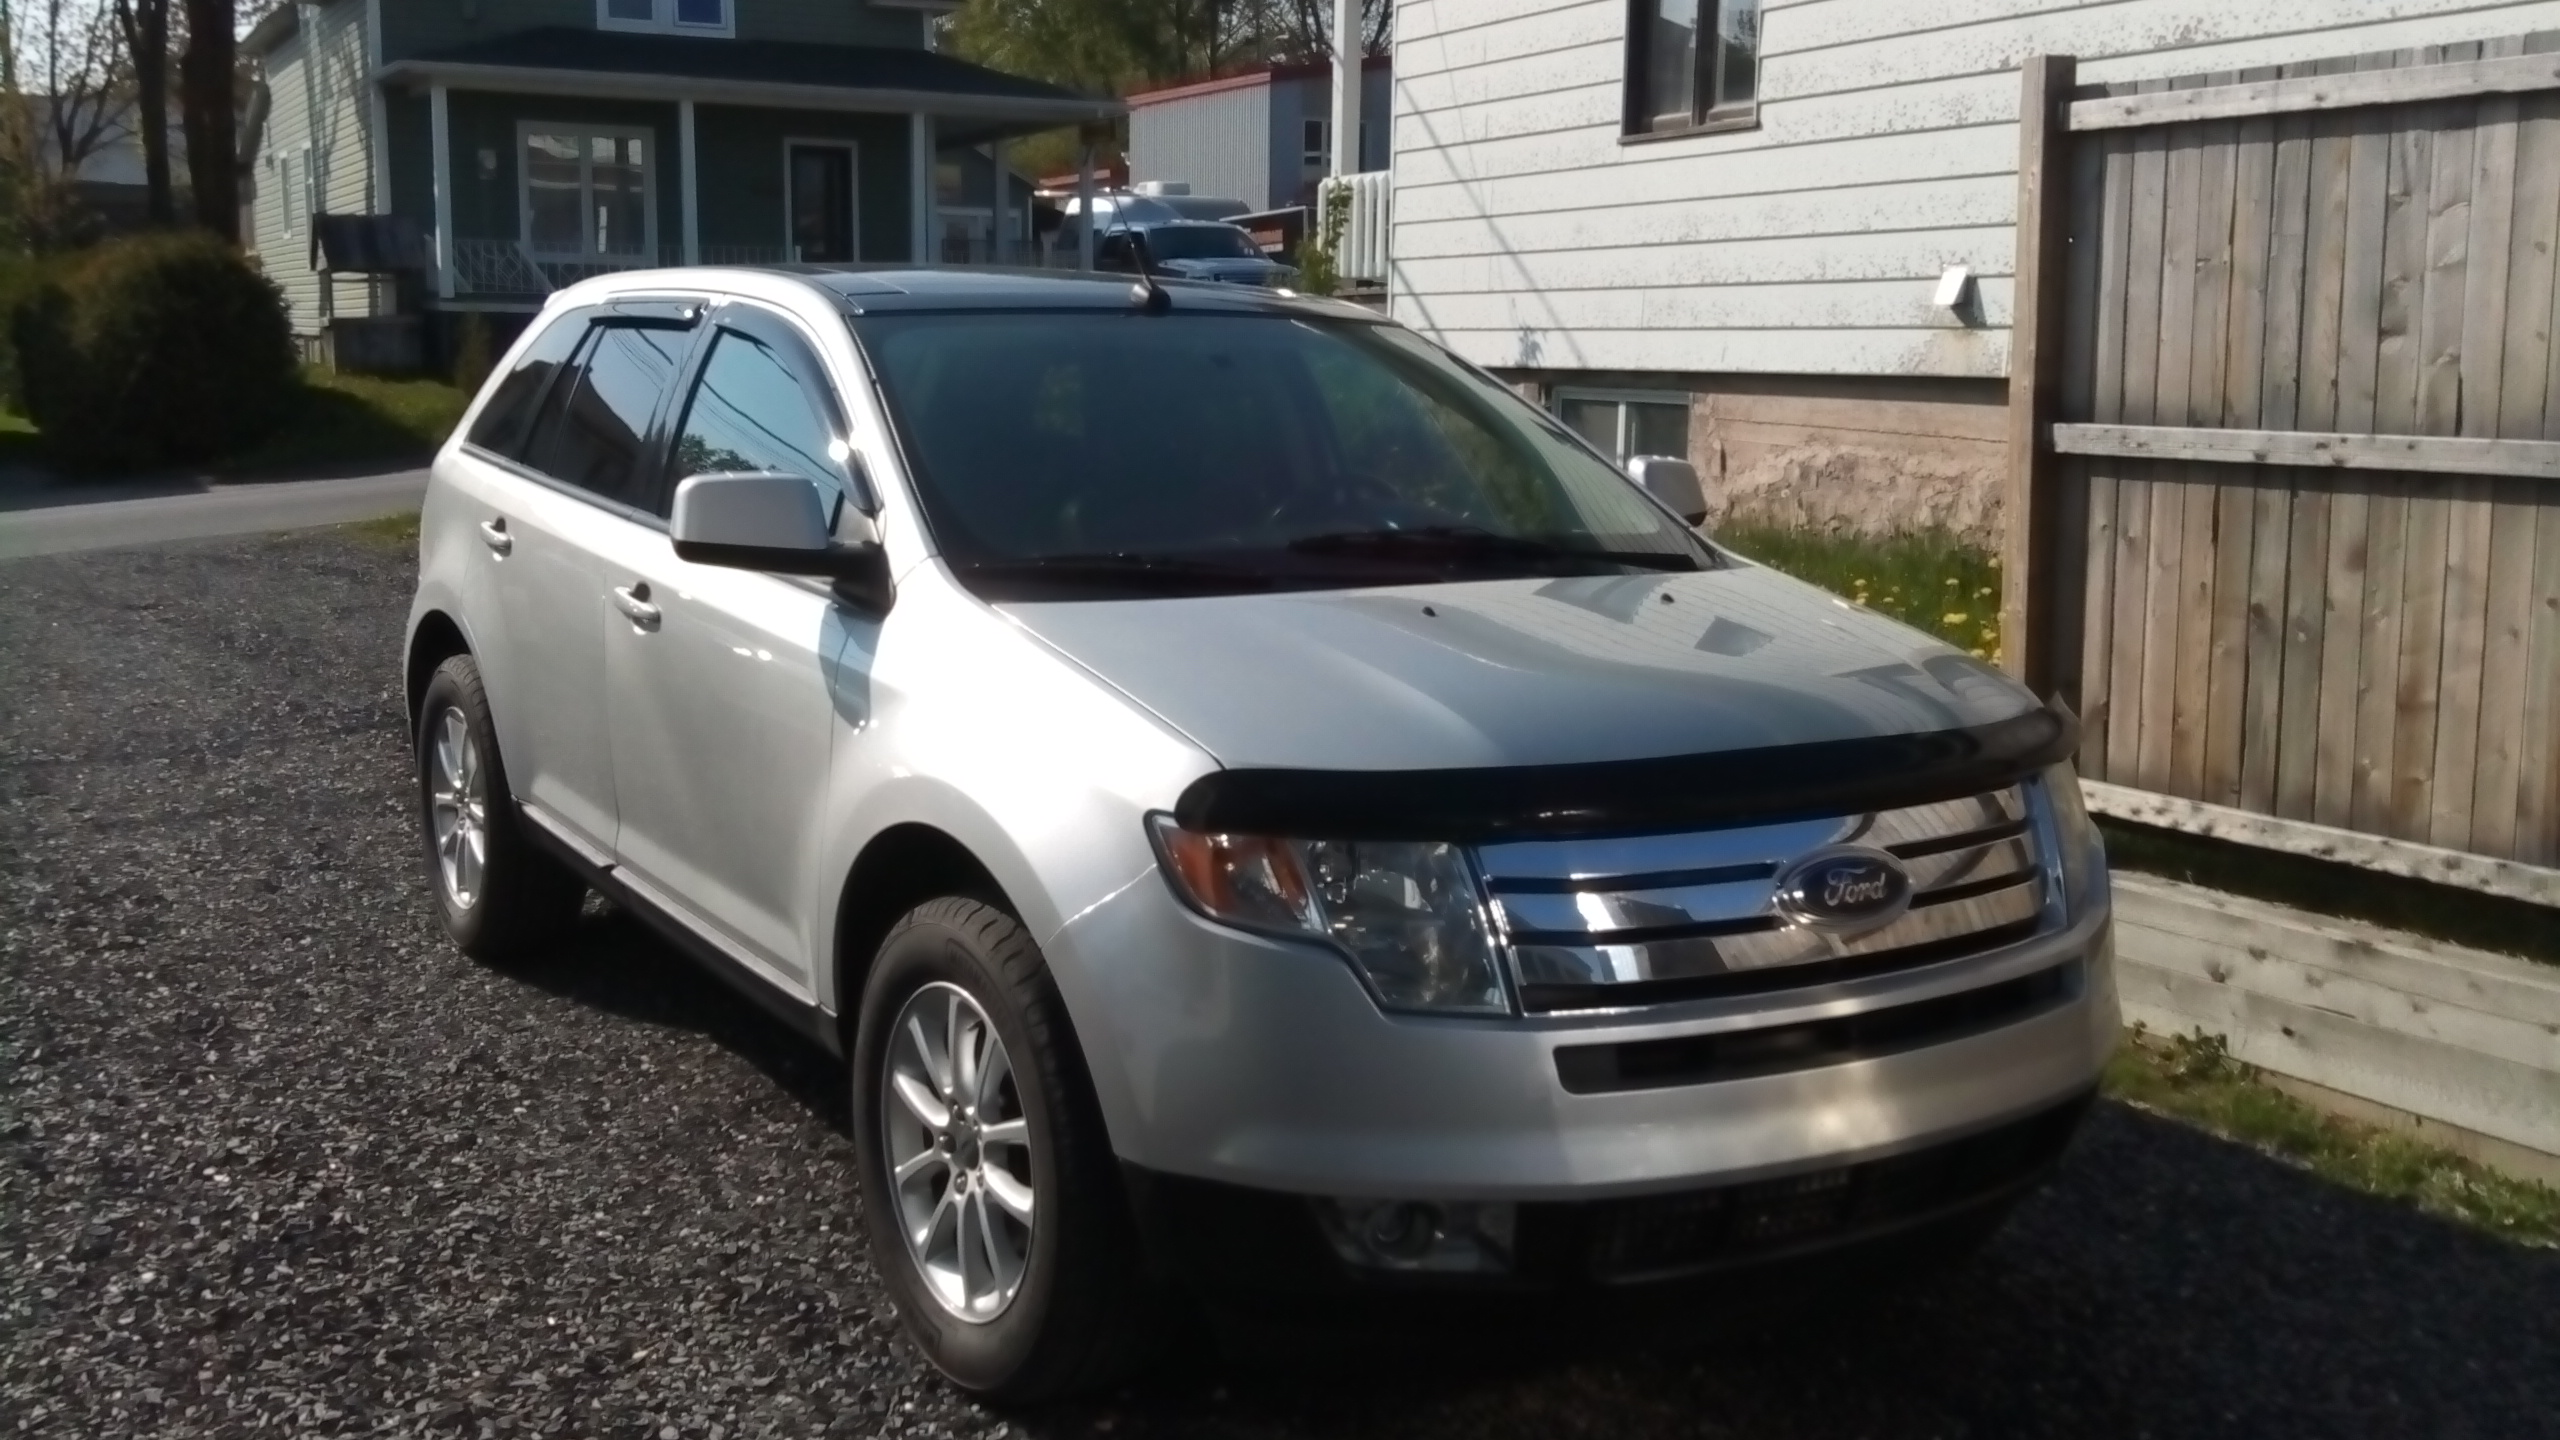 VUS Ford Edge 2010